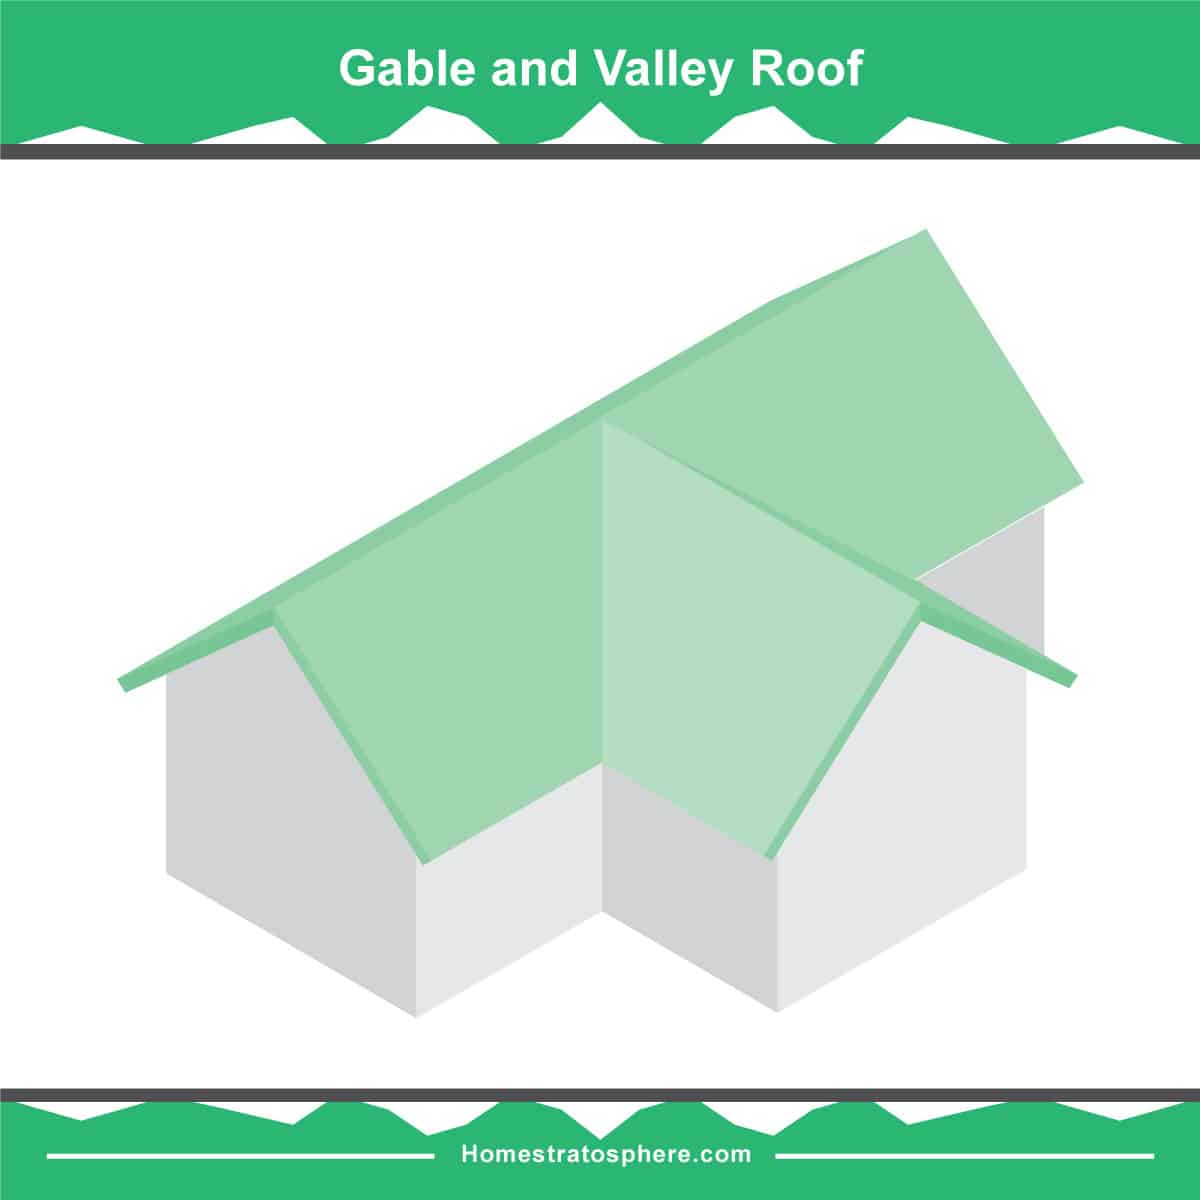 Gable and valley roof diagram